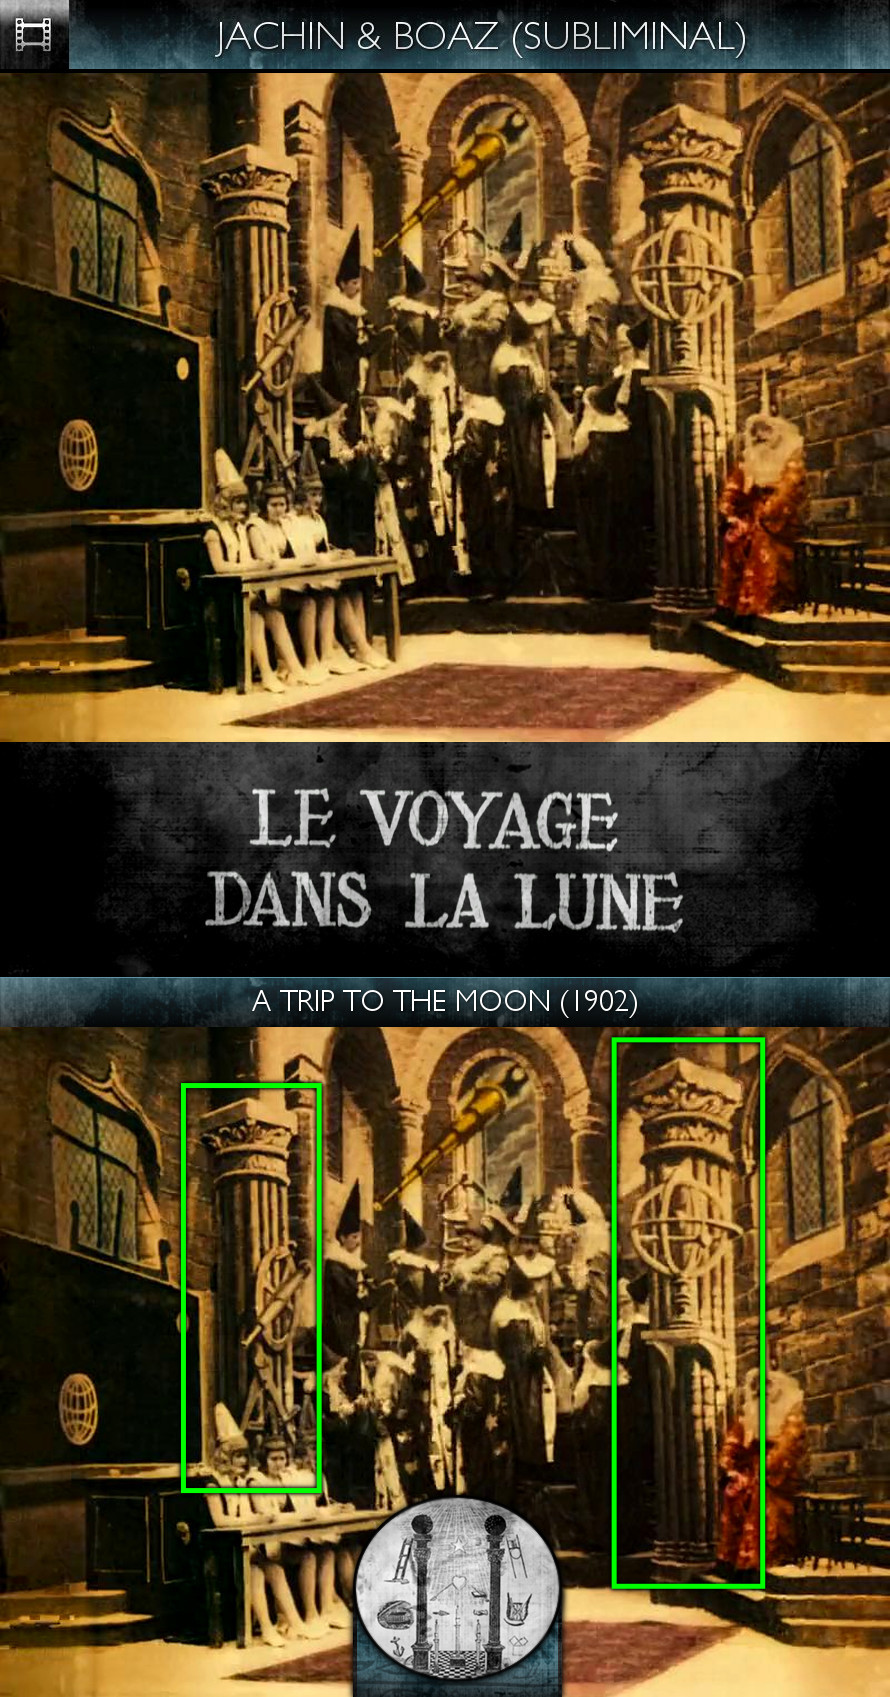 Voyage dans la Lune (A Trip to the Moon) (1902) - Jachin & Boaz - Subliminal